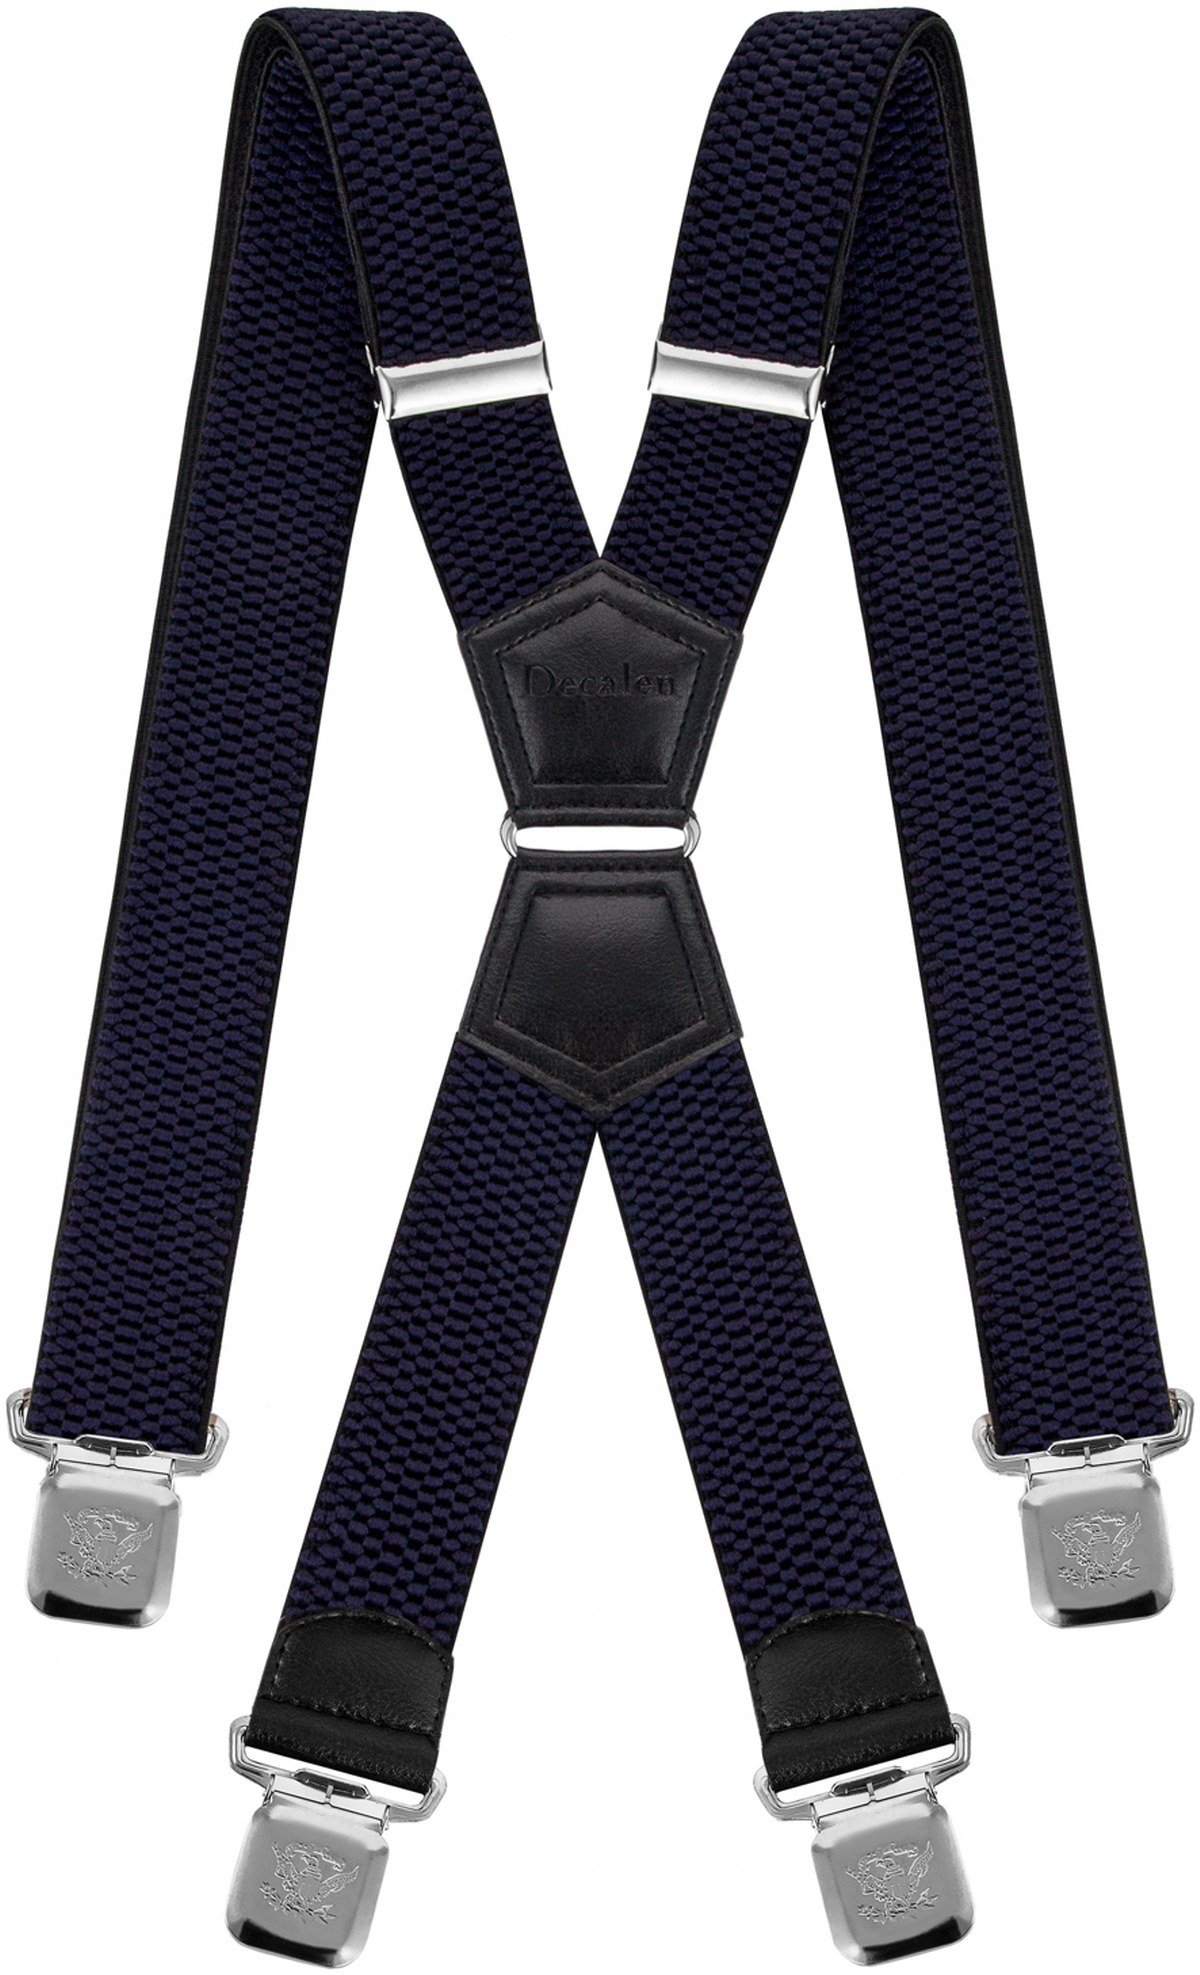 1cb2064552b0 Mens Suspenders X Style Very Strong Clips Adjustable One Size Fits All  Heavy Duty Braces product